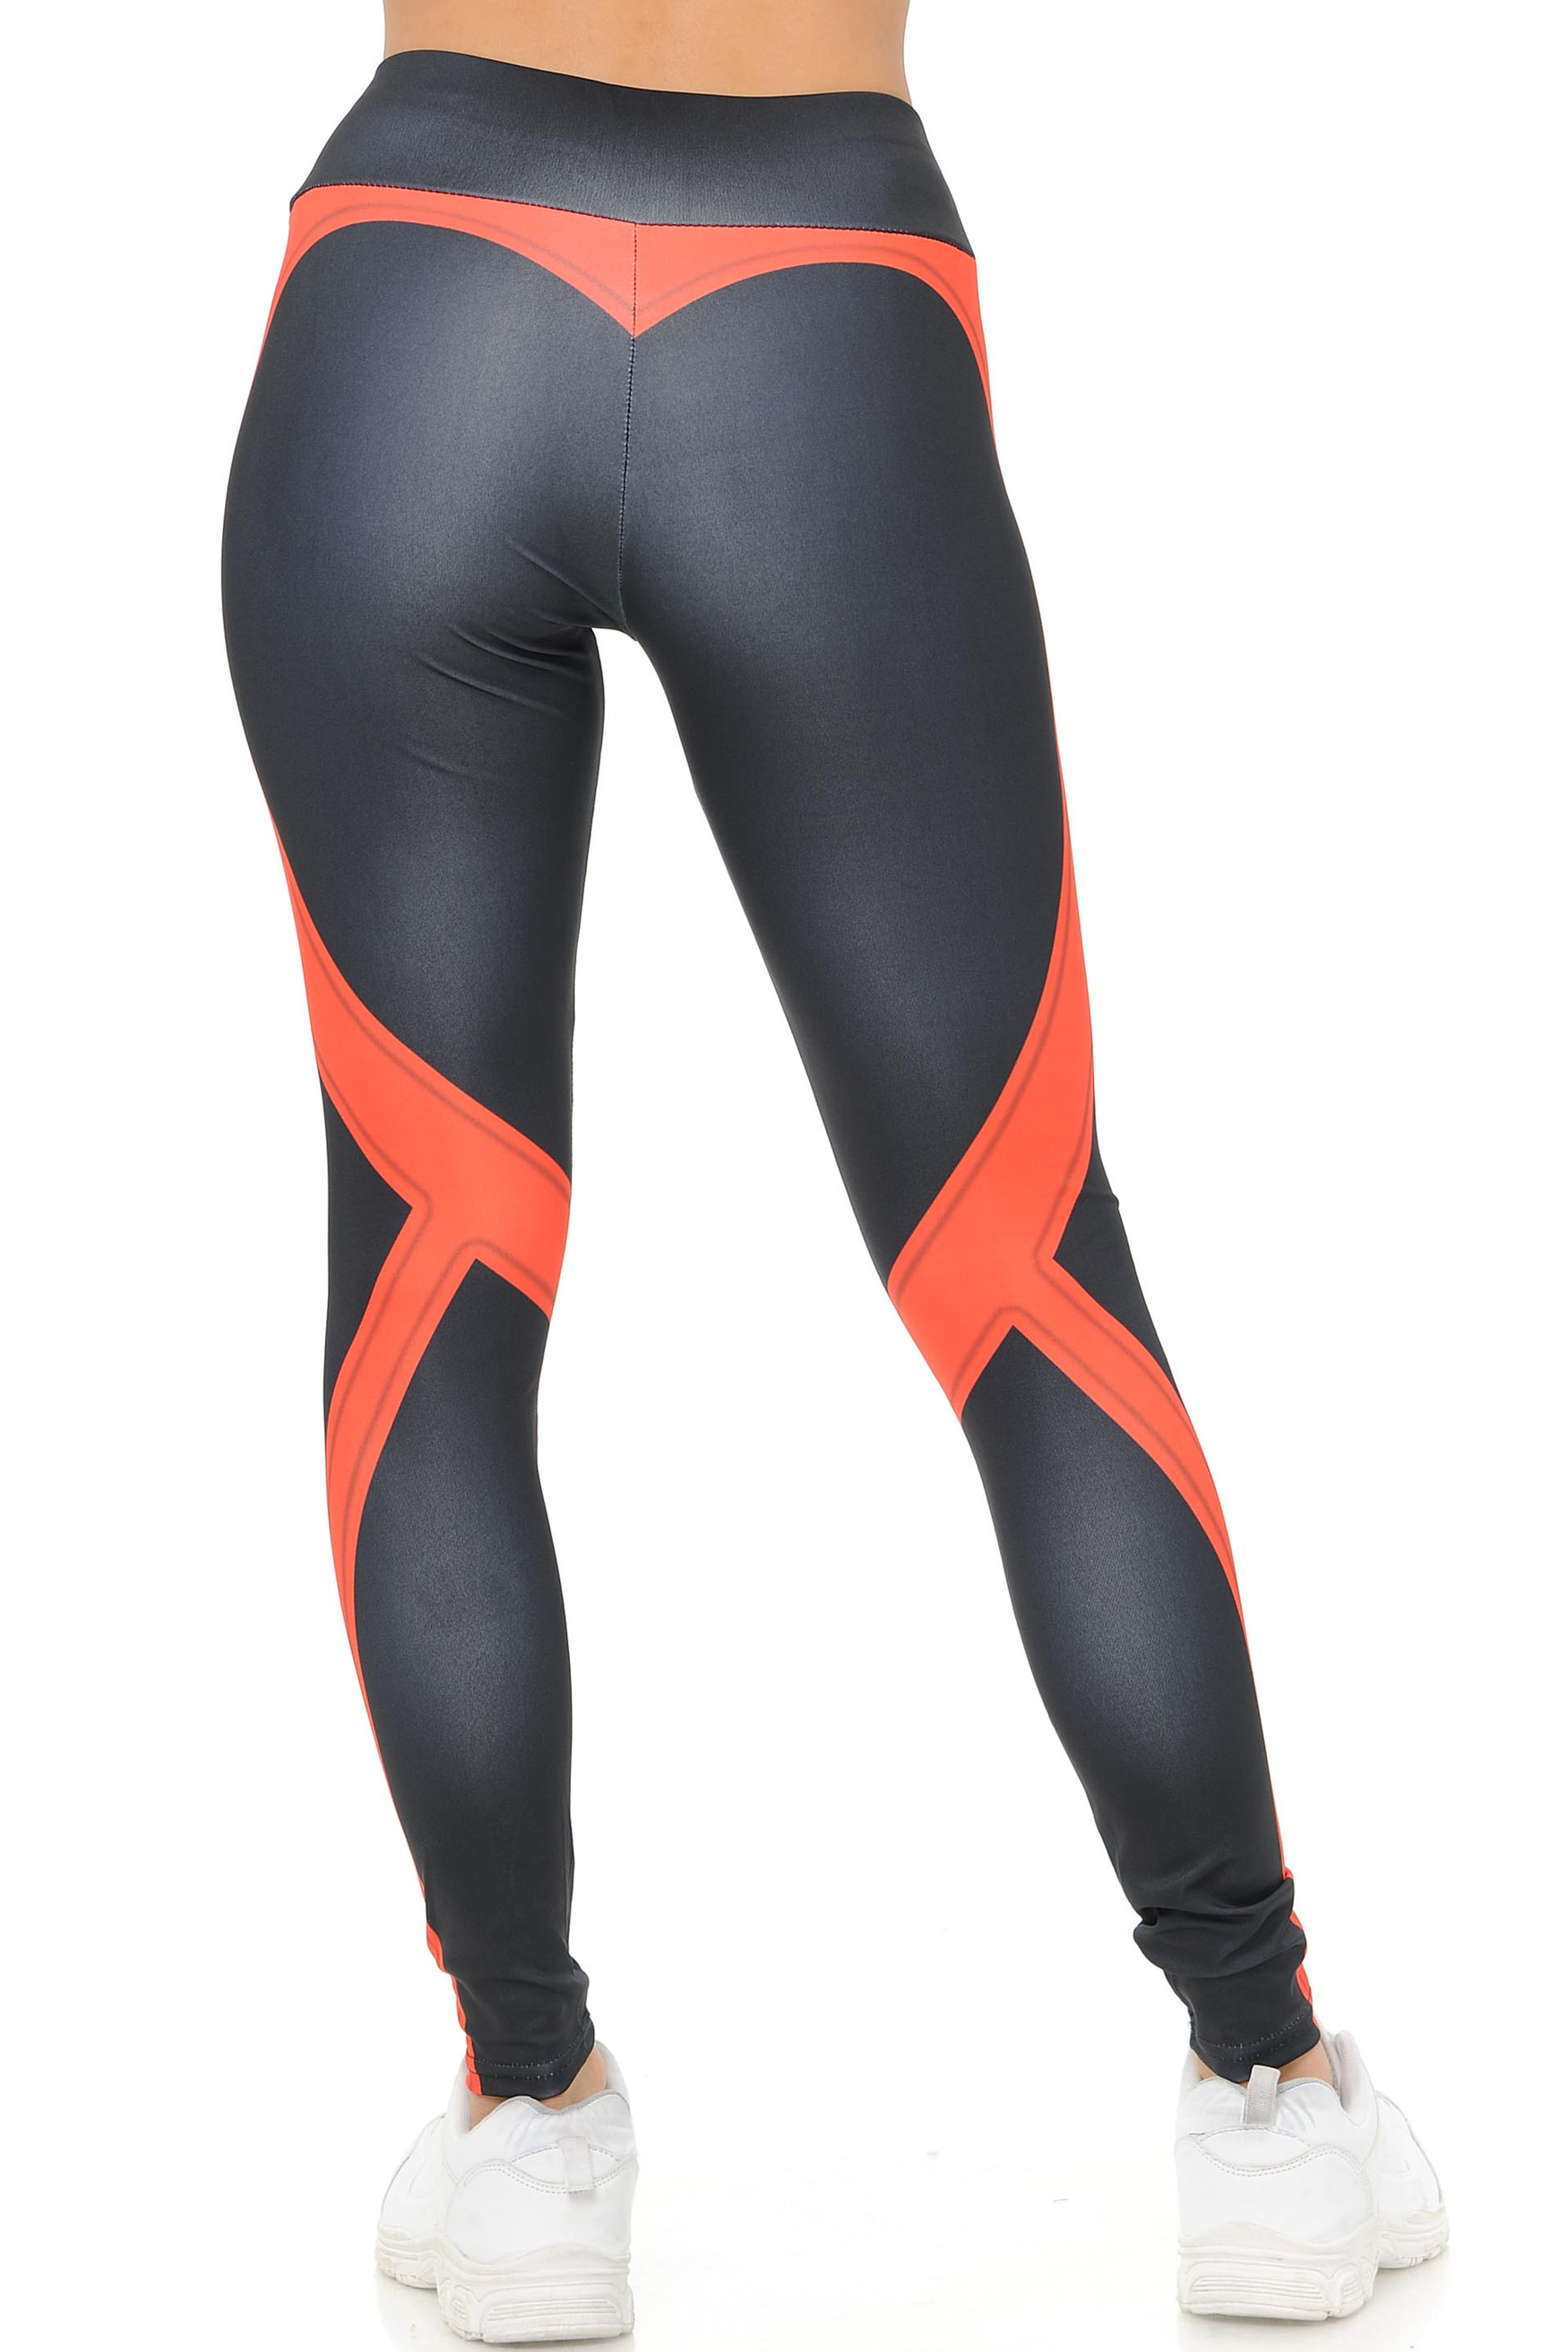 Coral Contouring Banded Heart Workout Leggings